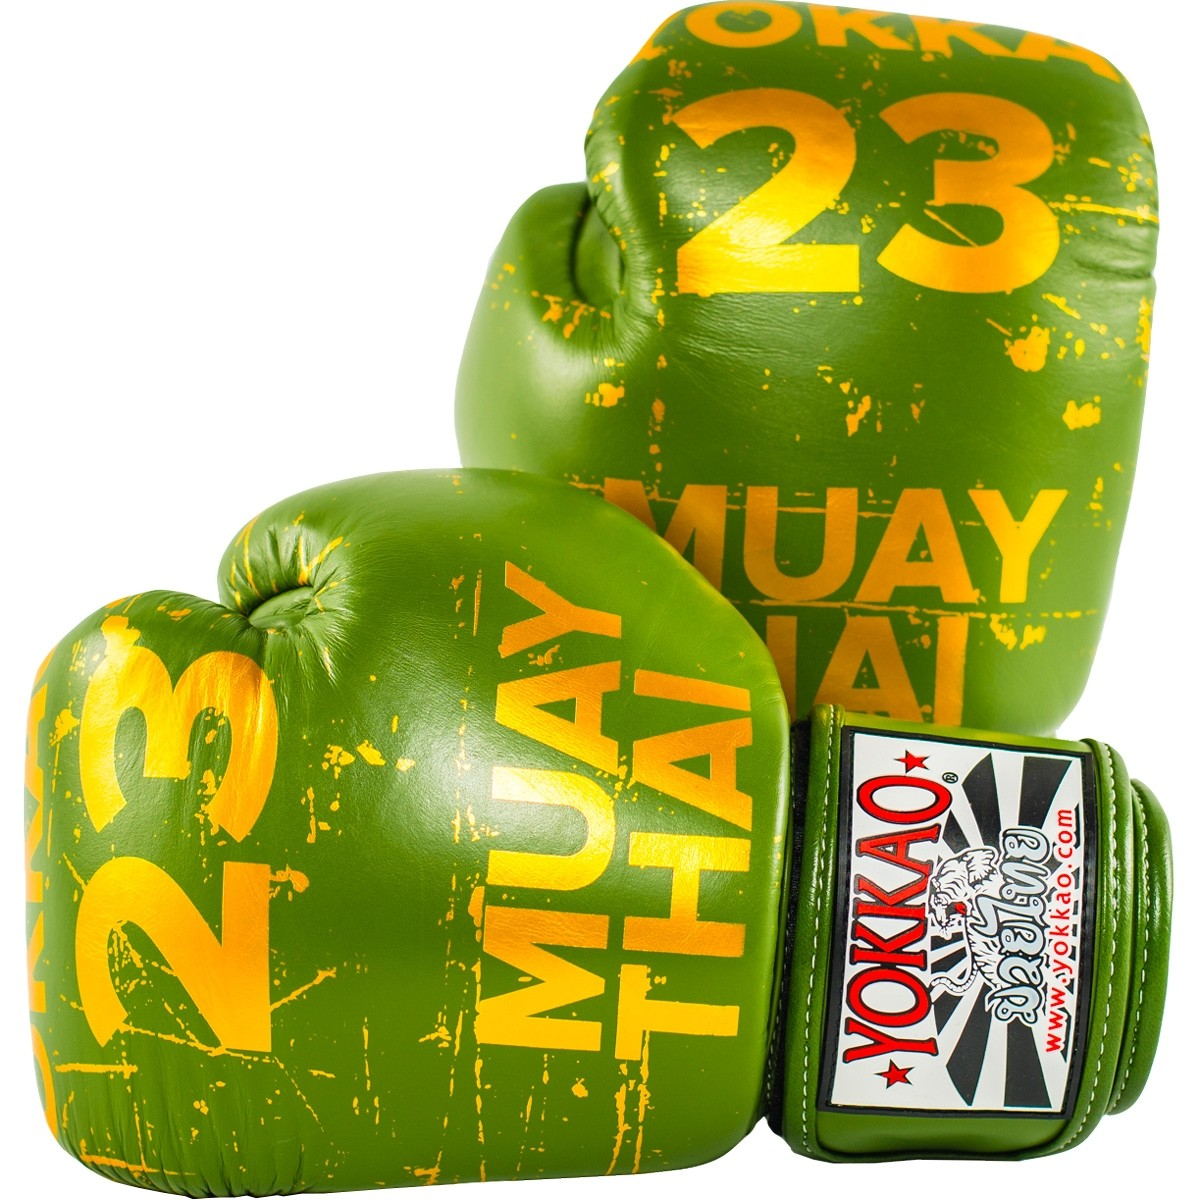 urban-muay-thai-boxing-gloves-green-413